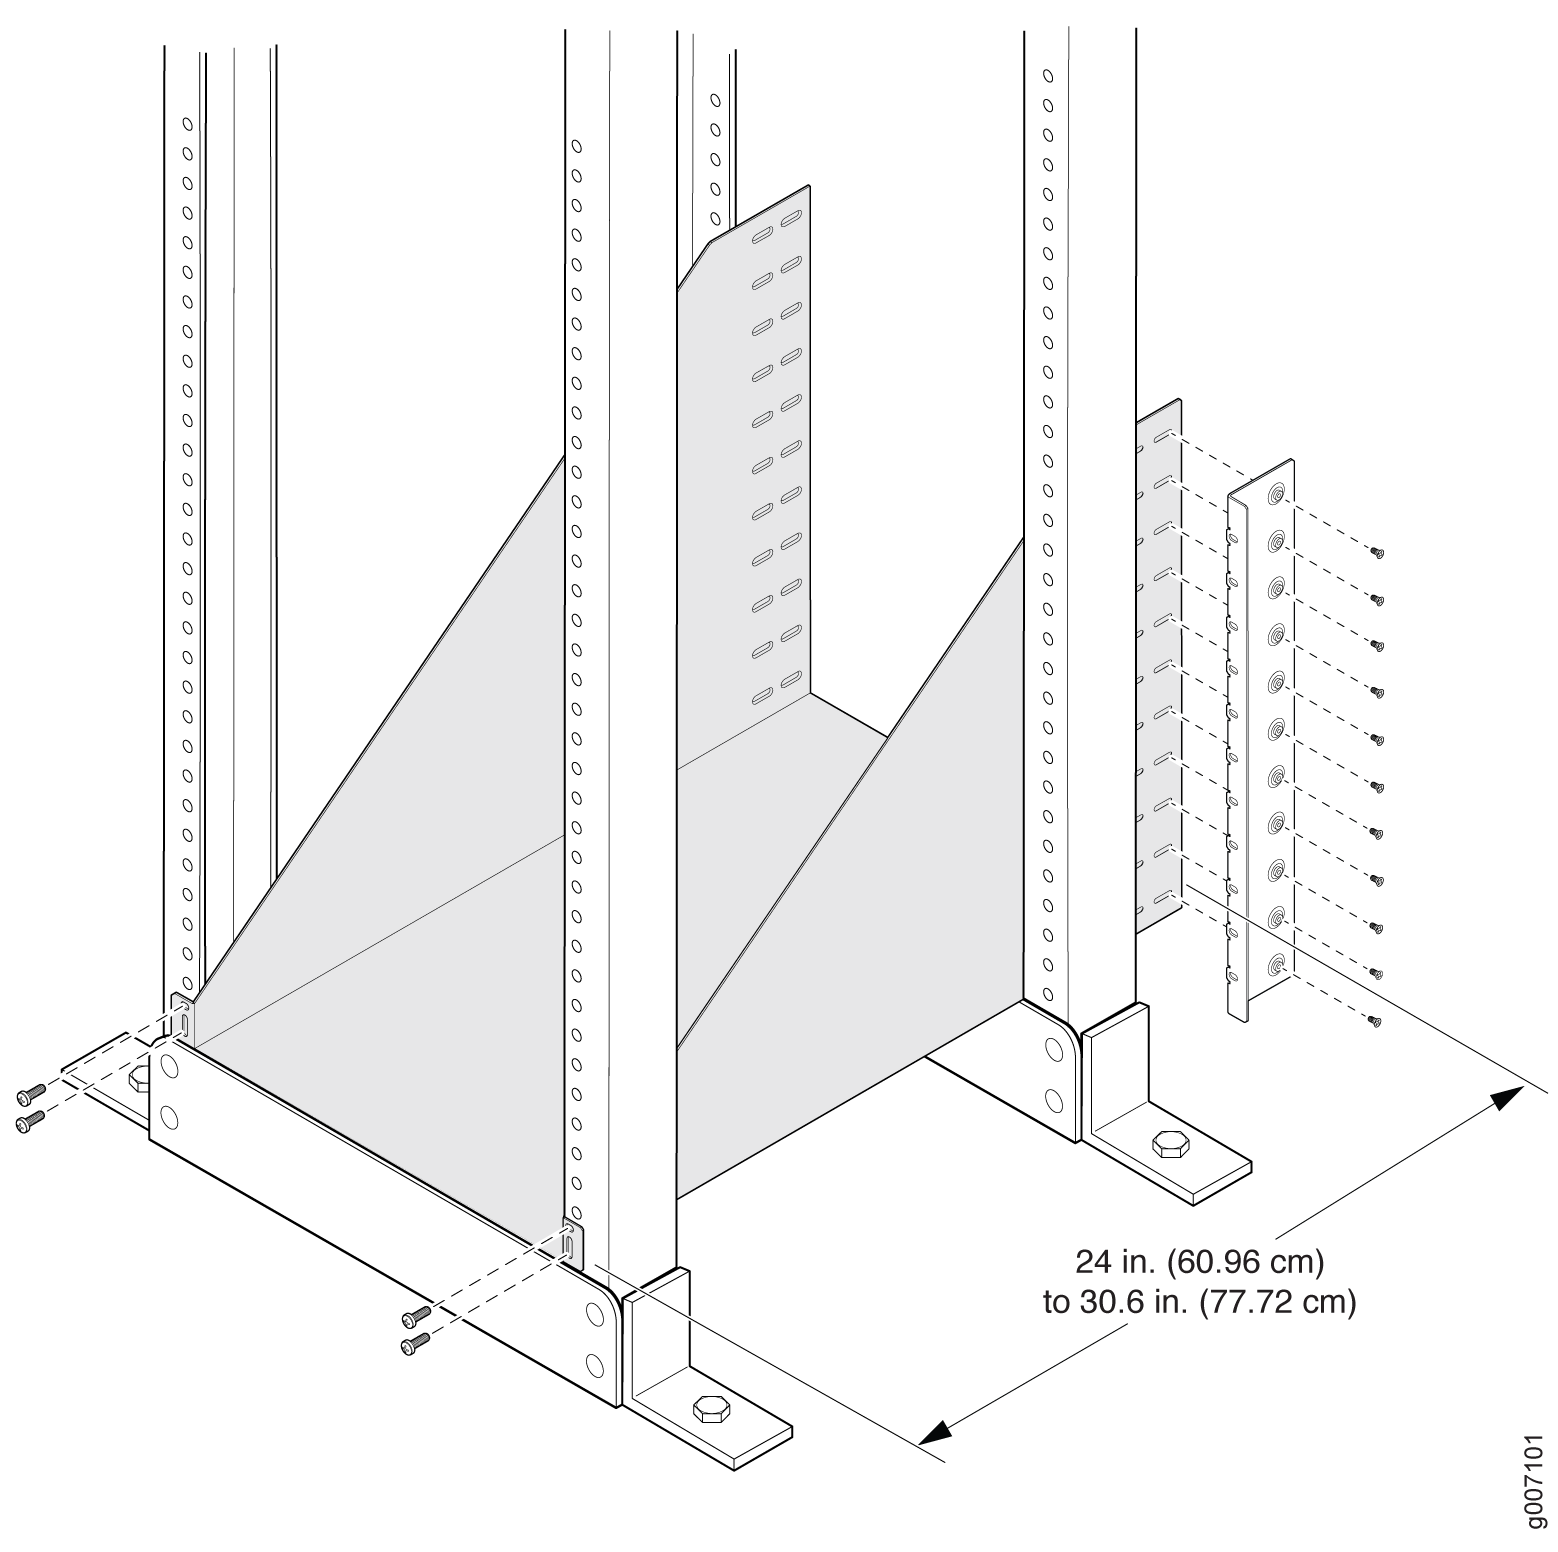 Installing the Mounting Hardware for a Four-Post Rack or Cabinet